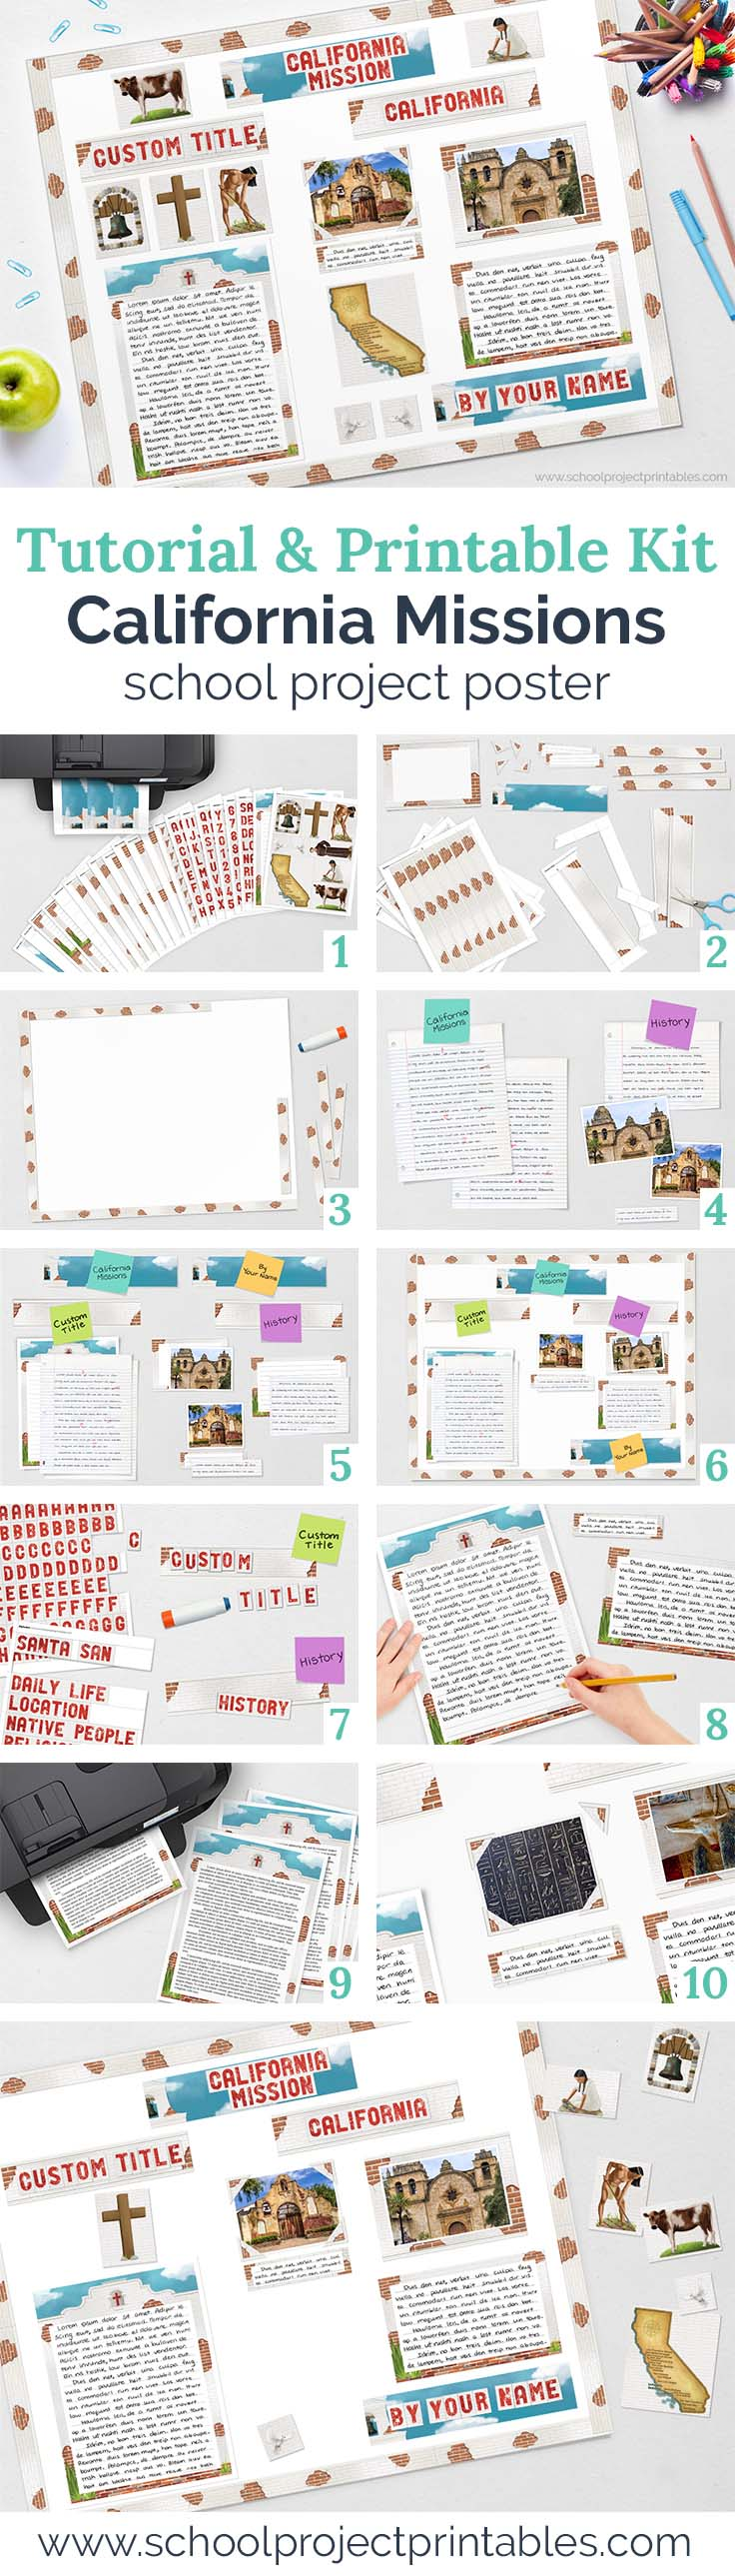 Step by step tutorial to make California Missions project using printable kit